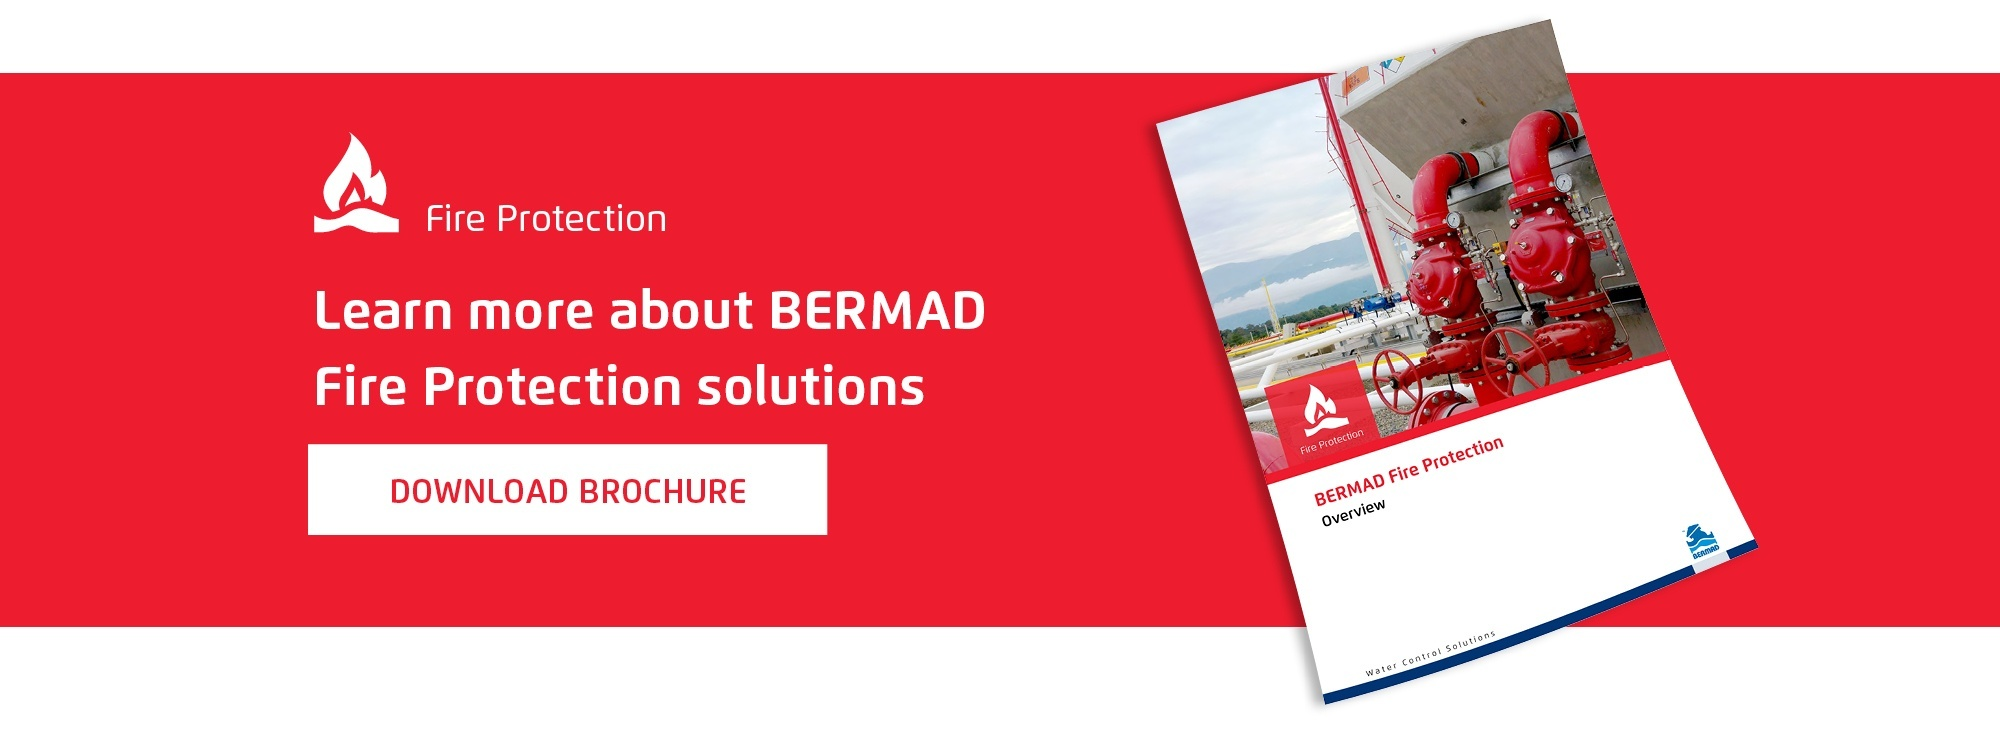 Learn more about BERMAD Fire Protaction solutions - Brochure